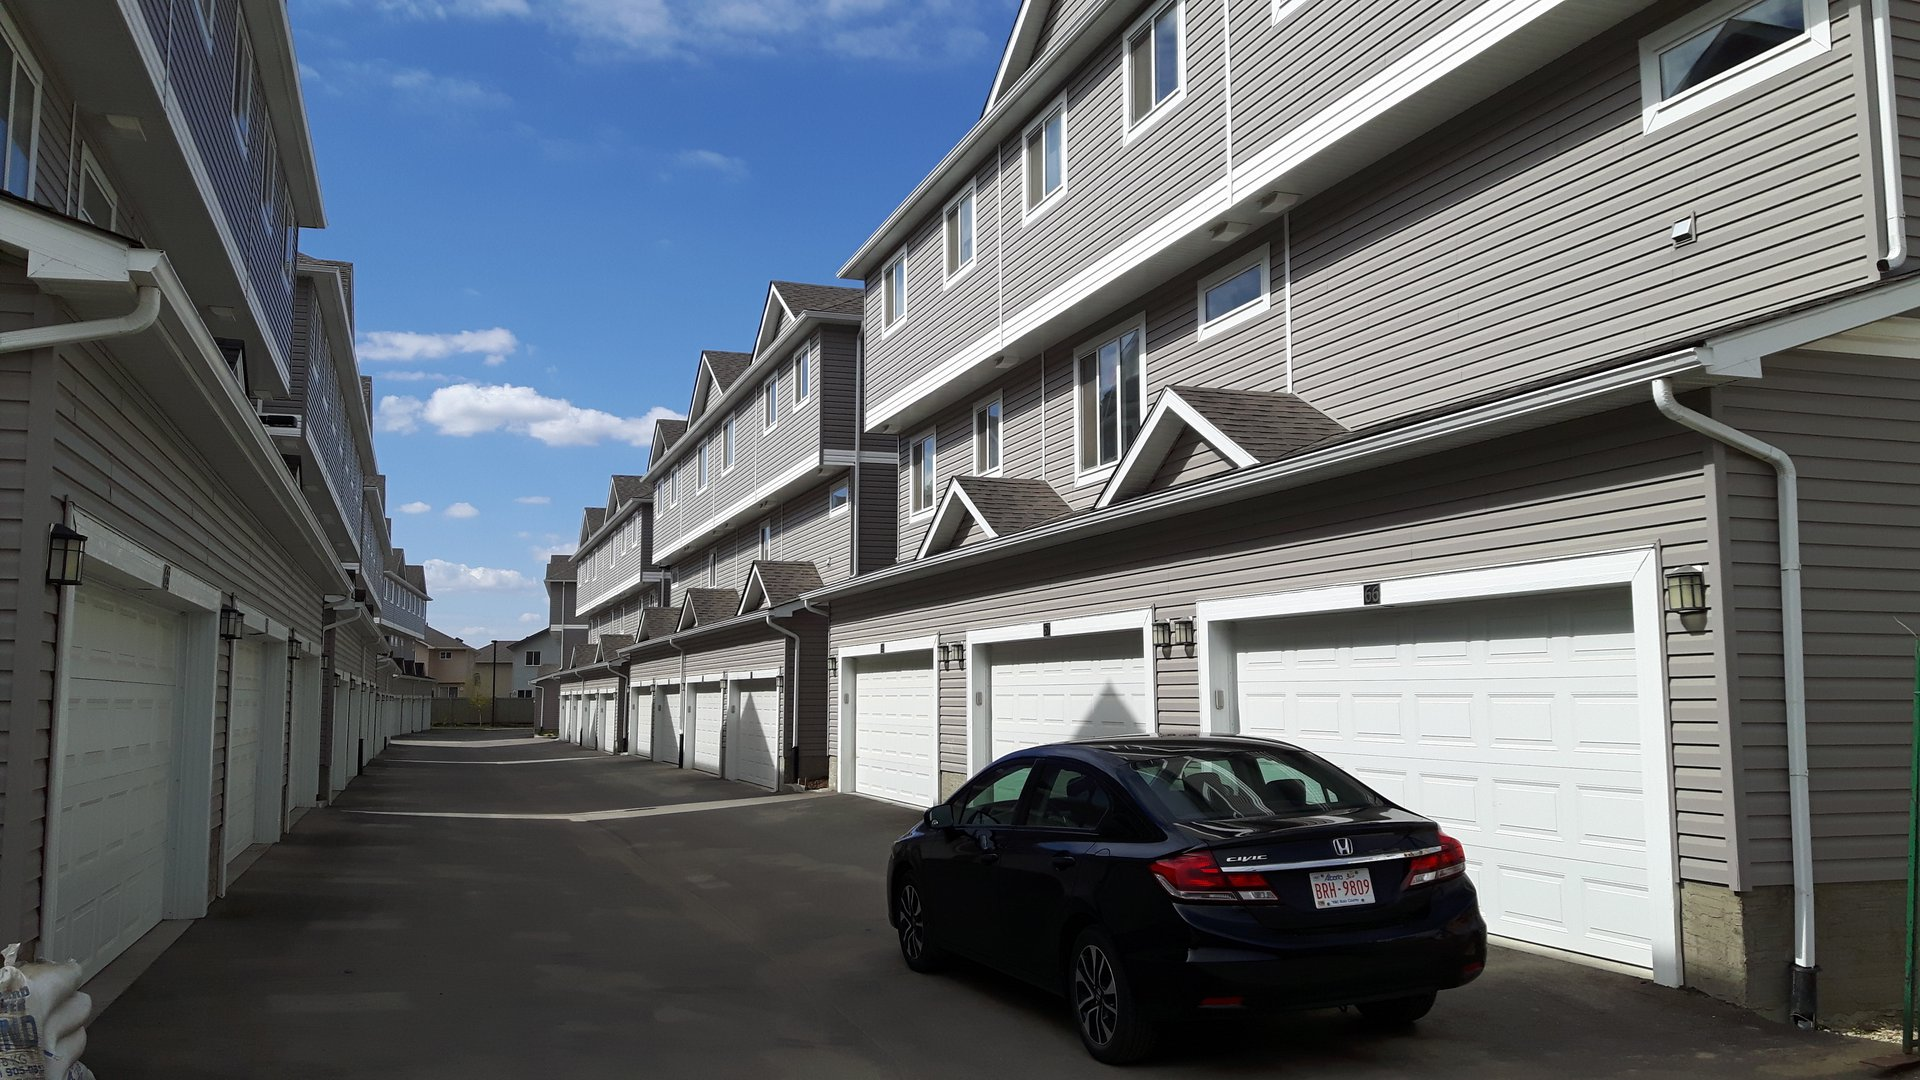 Apartment for rent at 1816 Rutherford Rd SW, Edmonton, AB.